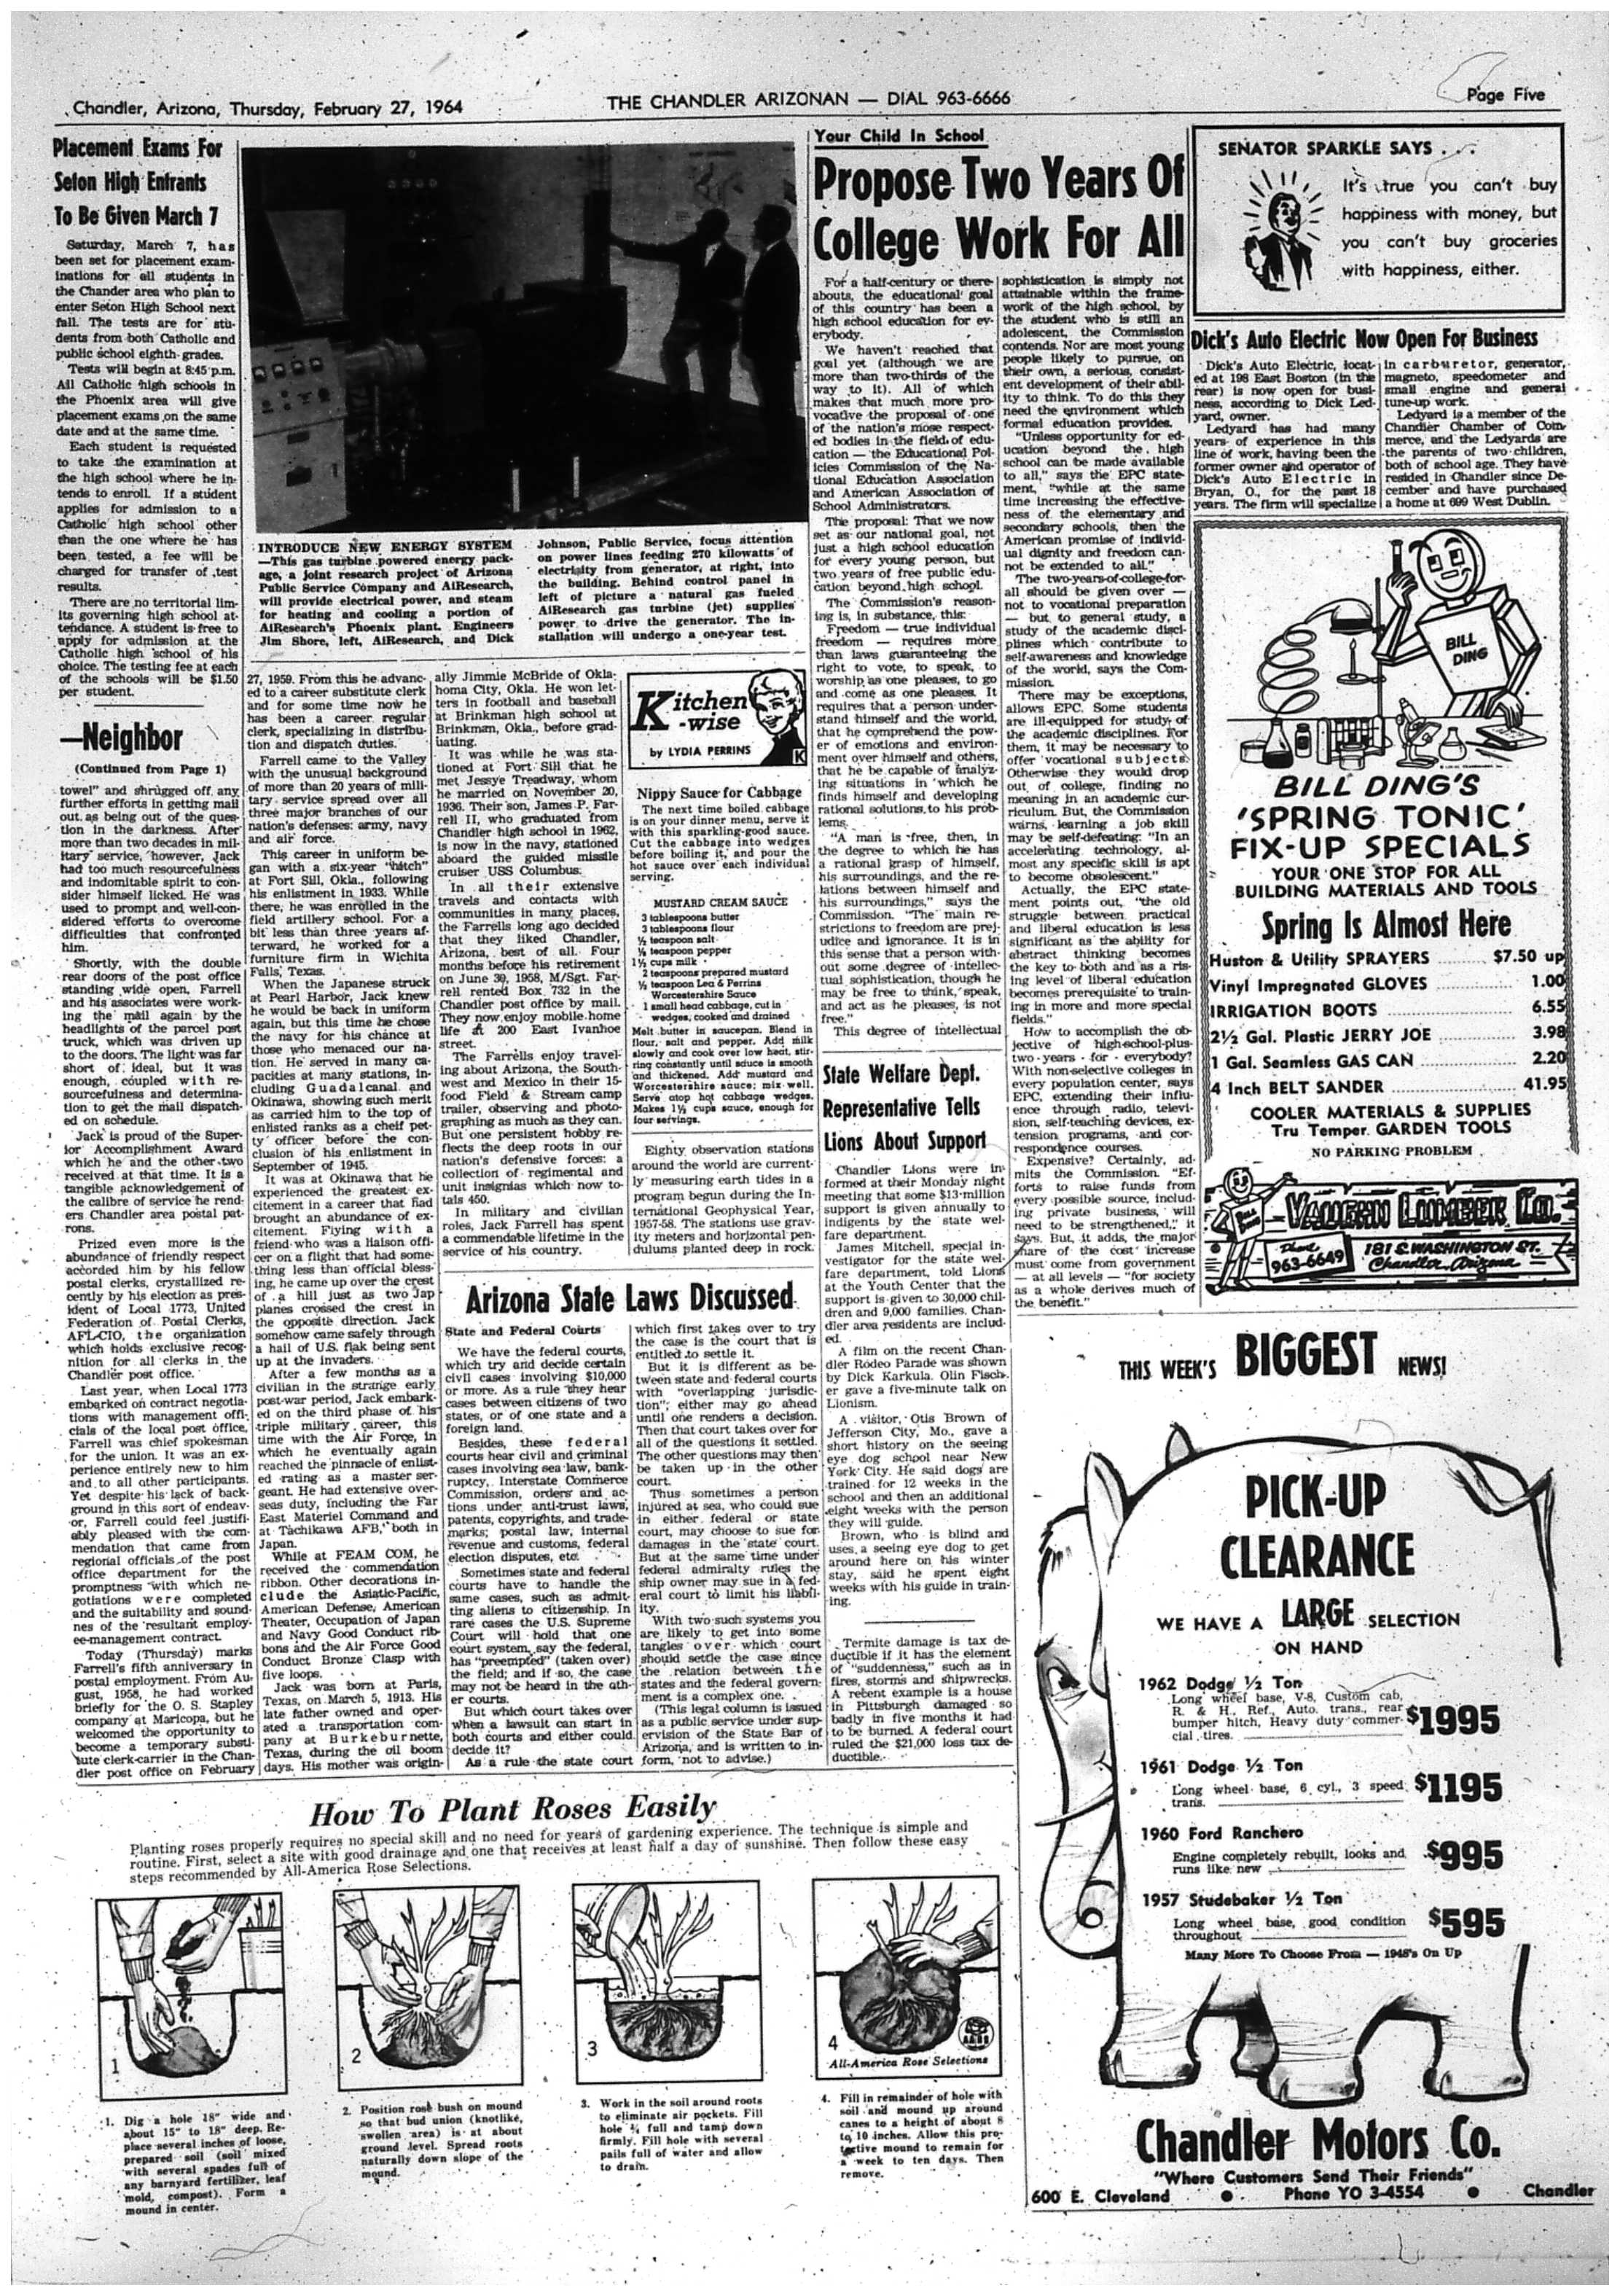 02-27-1964 - Page 5 .jpg